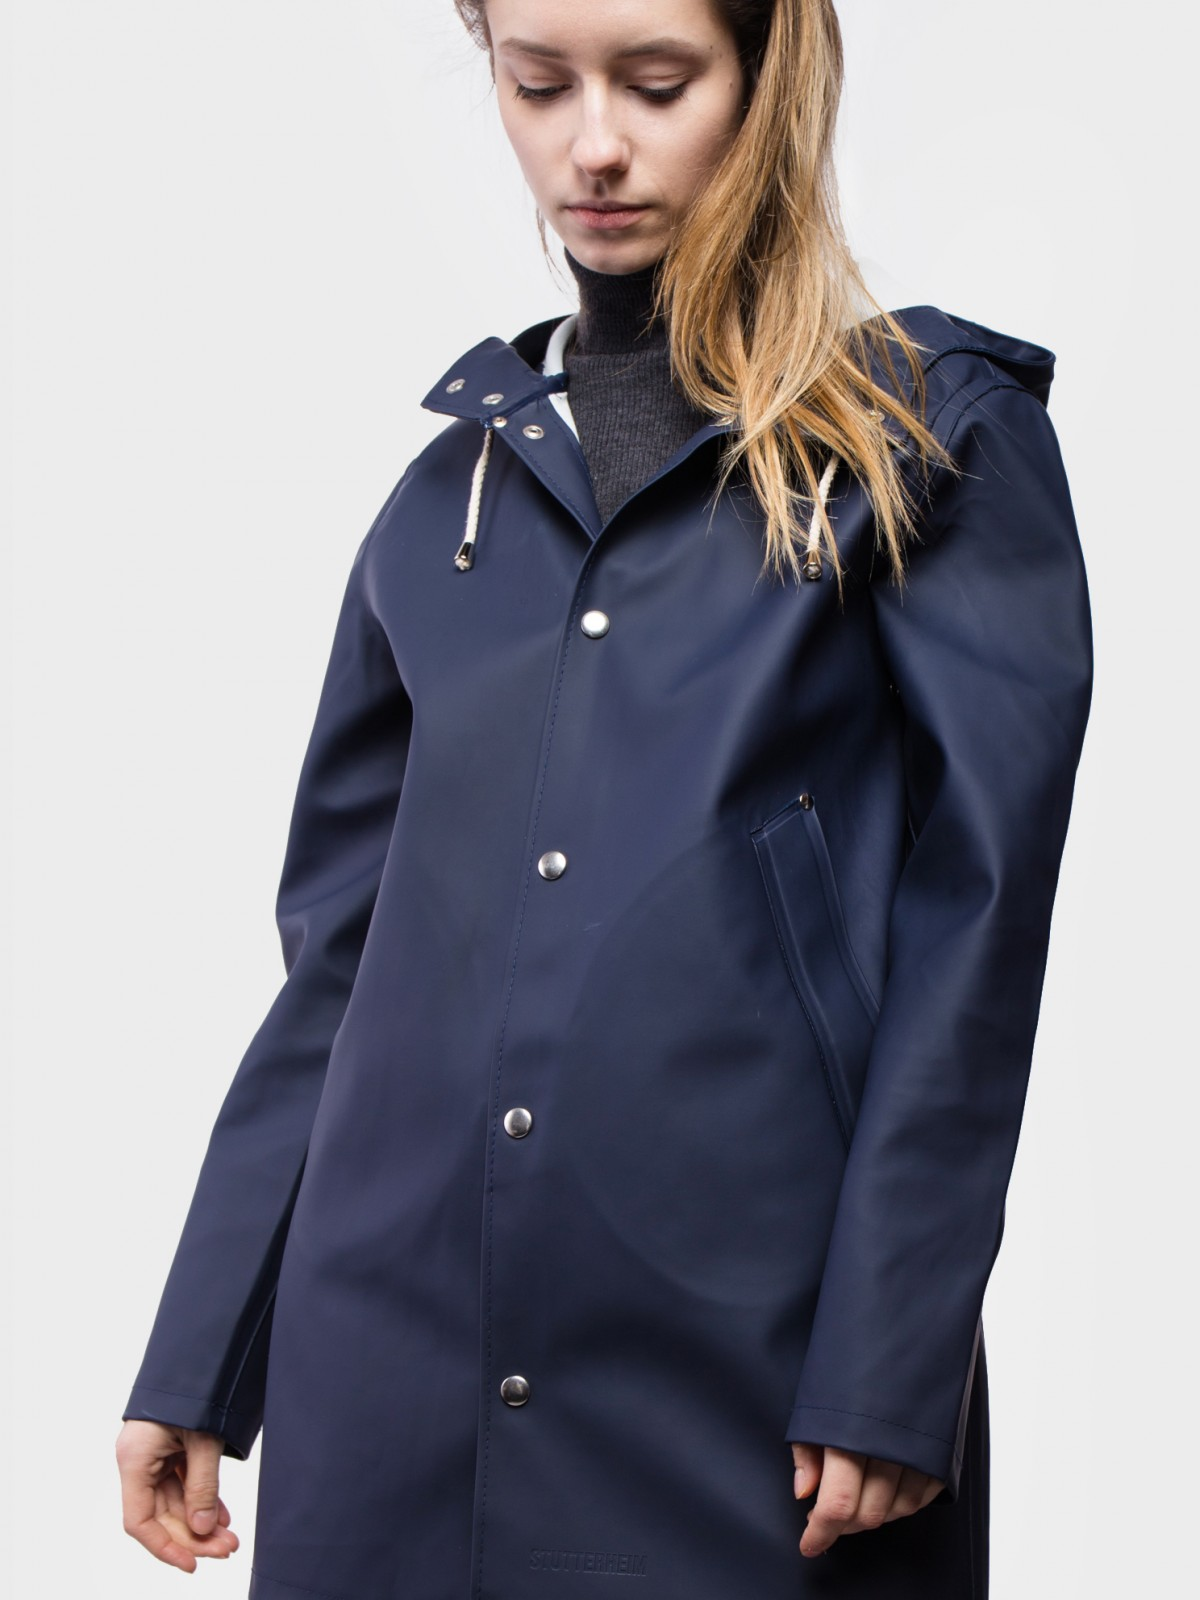 Stutterheim Mosebacke Raincoat in Navy